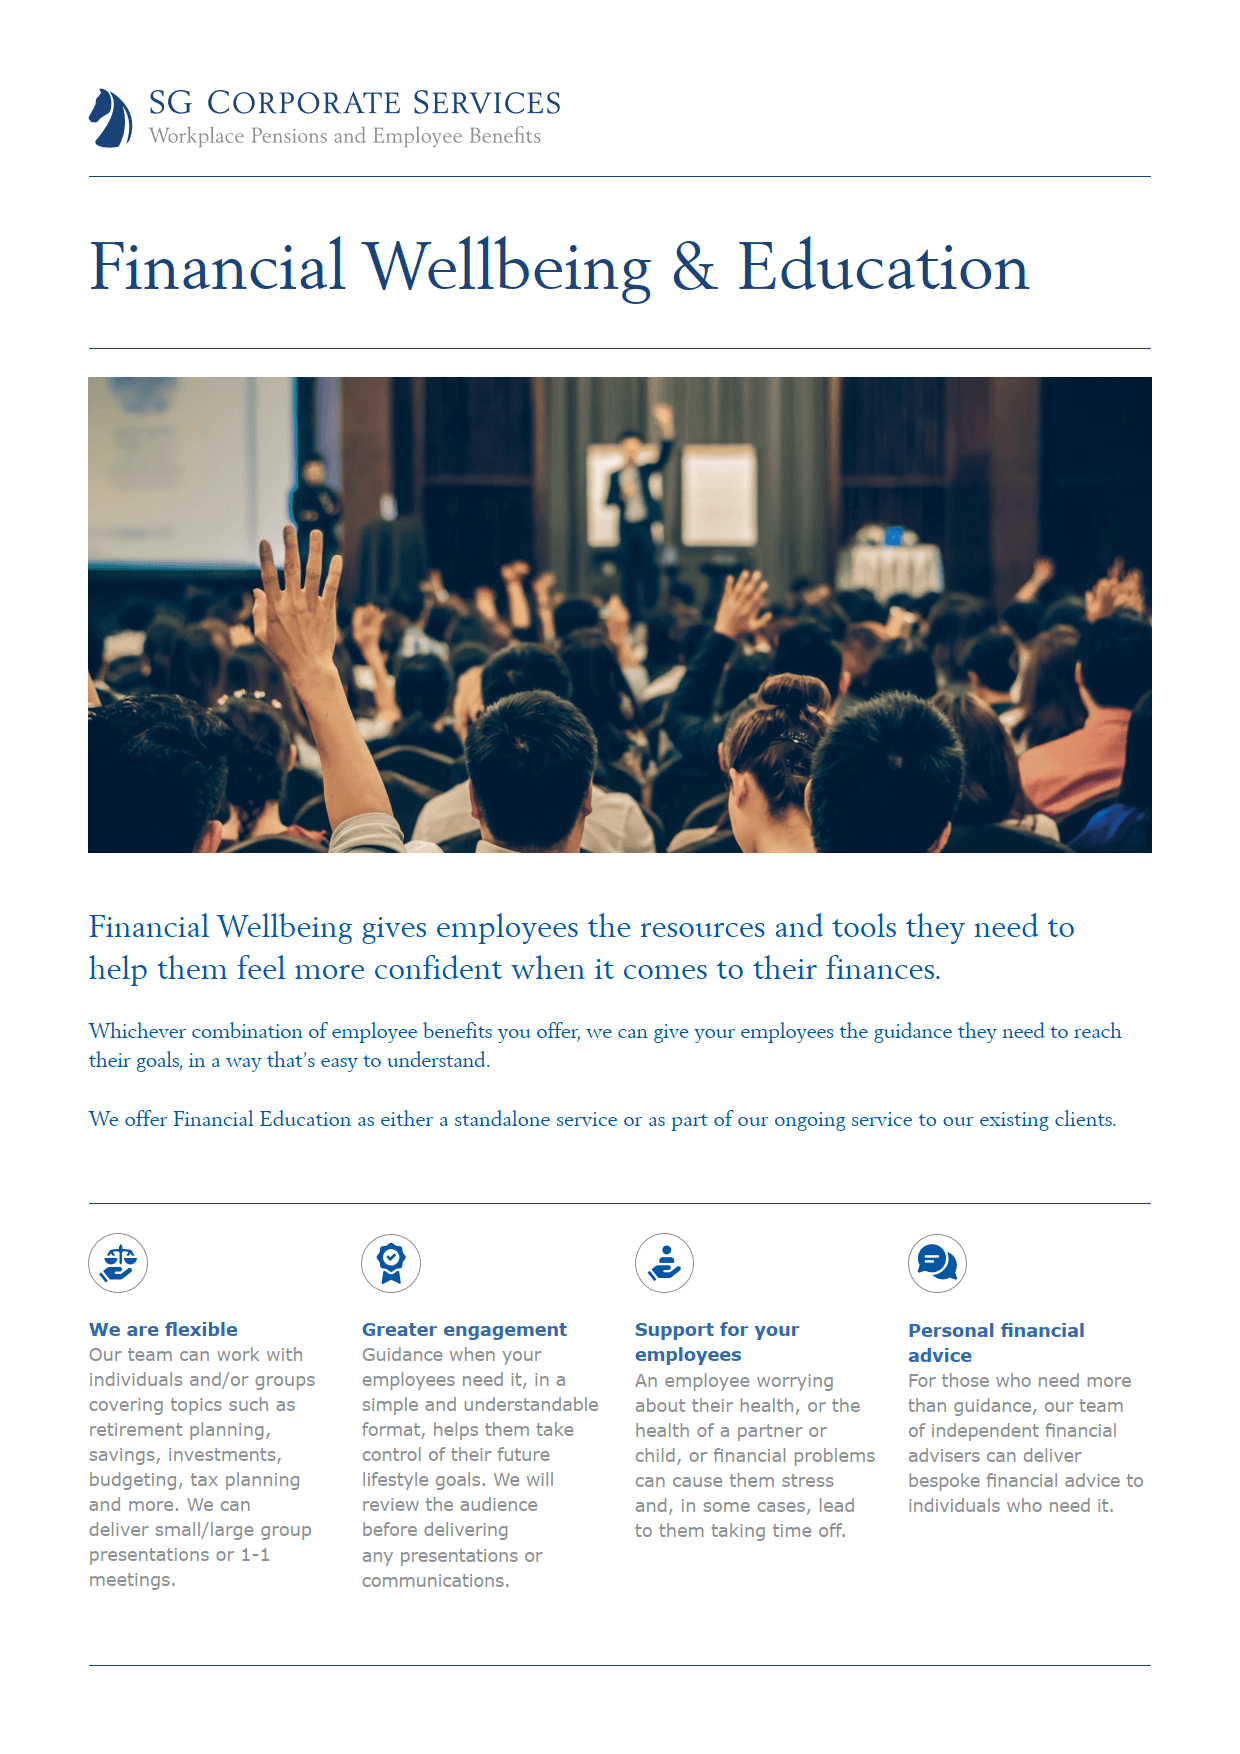 Product Guide - Financial Wellbeing & Education